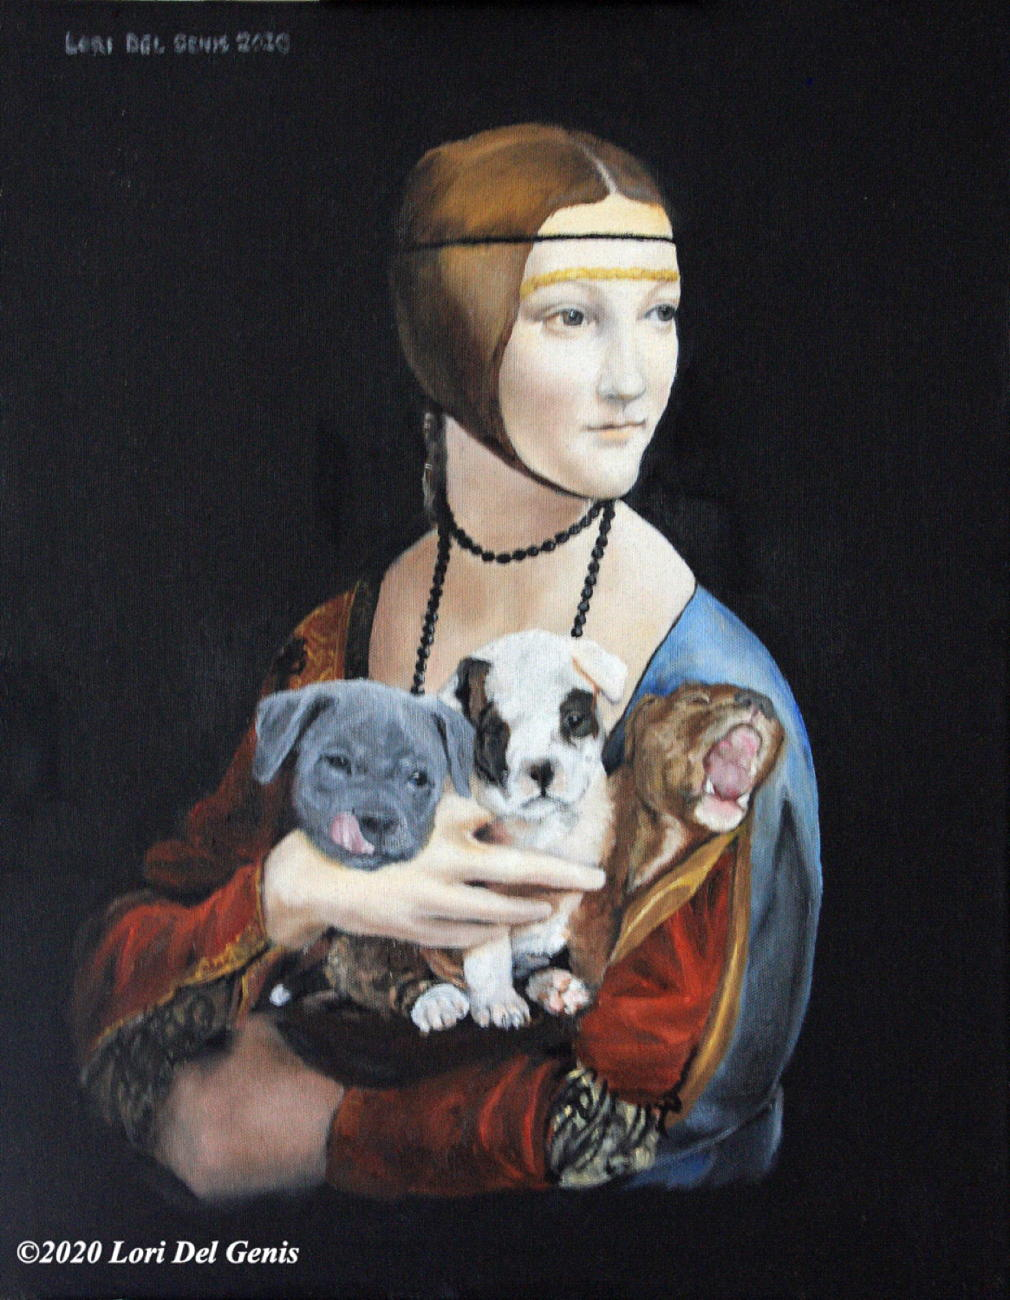 'Lady with Cerberus Puppy', after Da Vinci's 'Lady with an Ermine'. She holds a 3-headed puppy on her lap. Oil painting by Lori Del Genis.